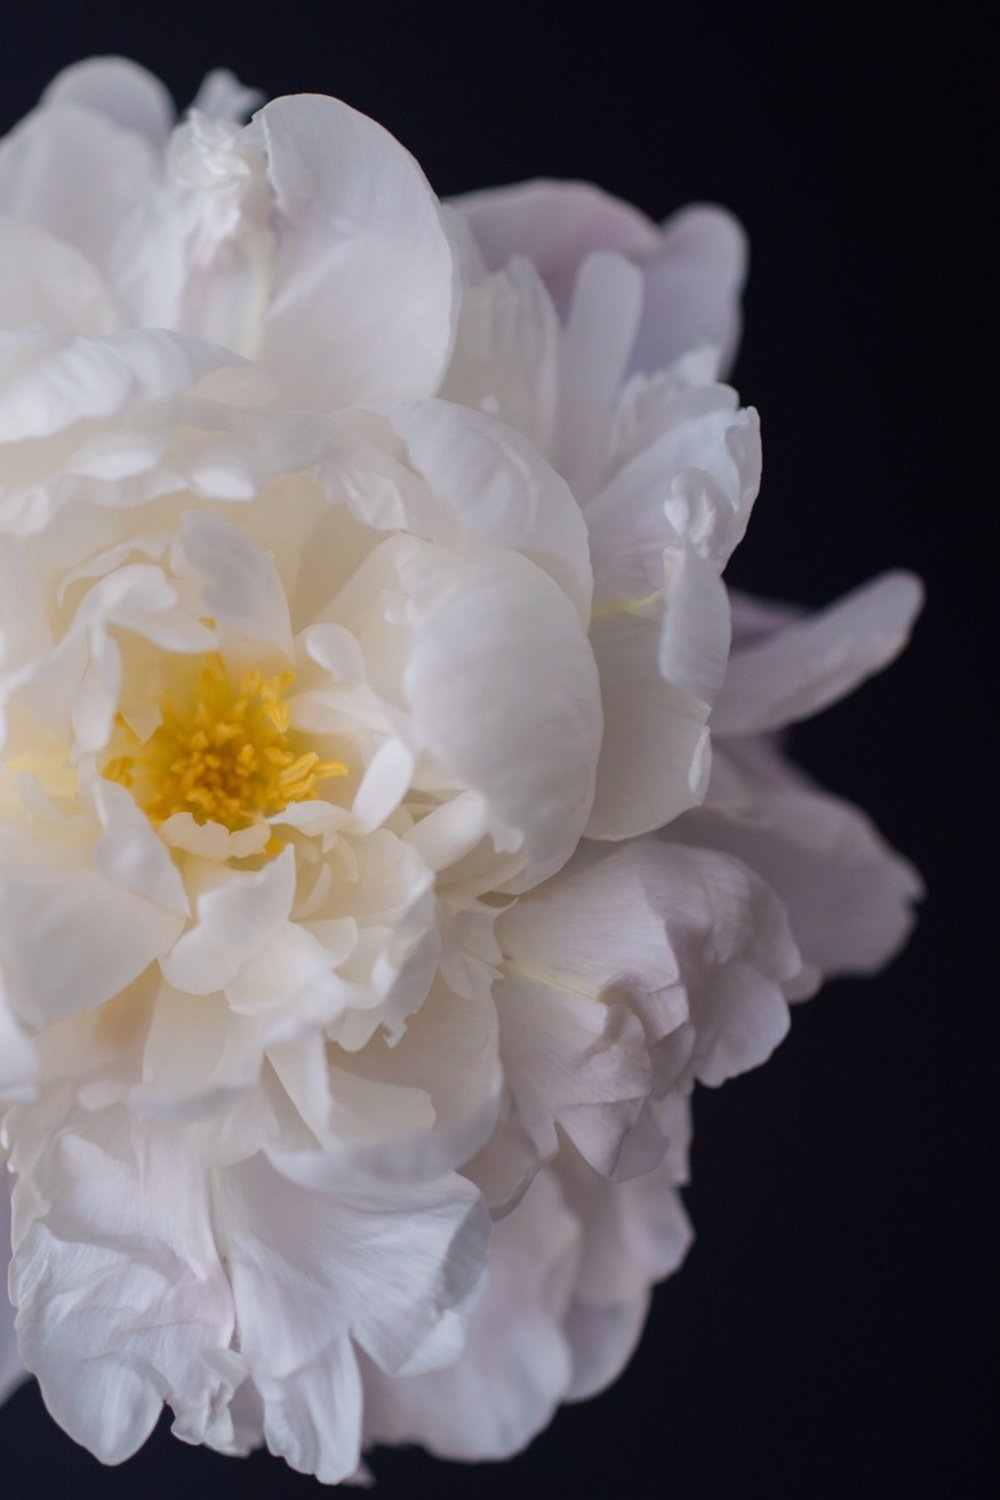 peony_white_yellow_flower.jpg